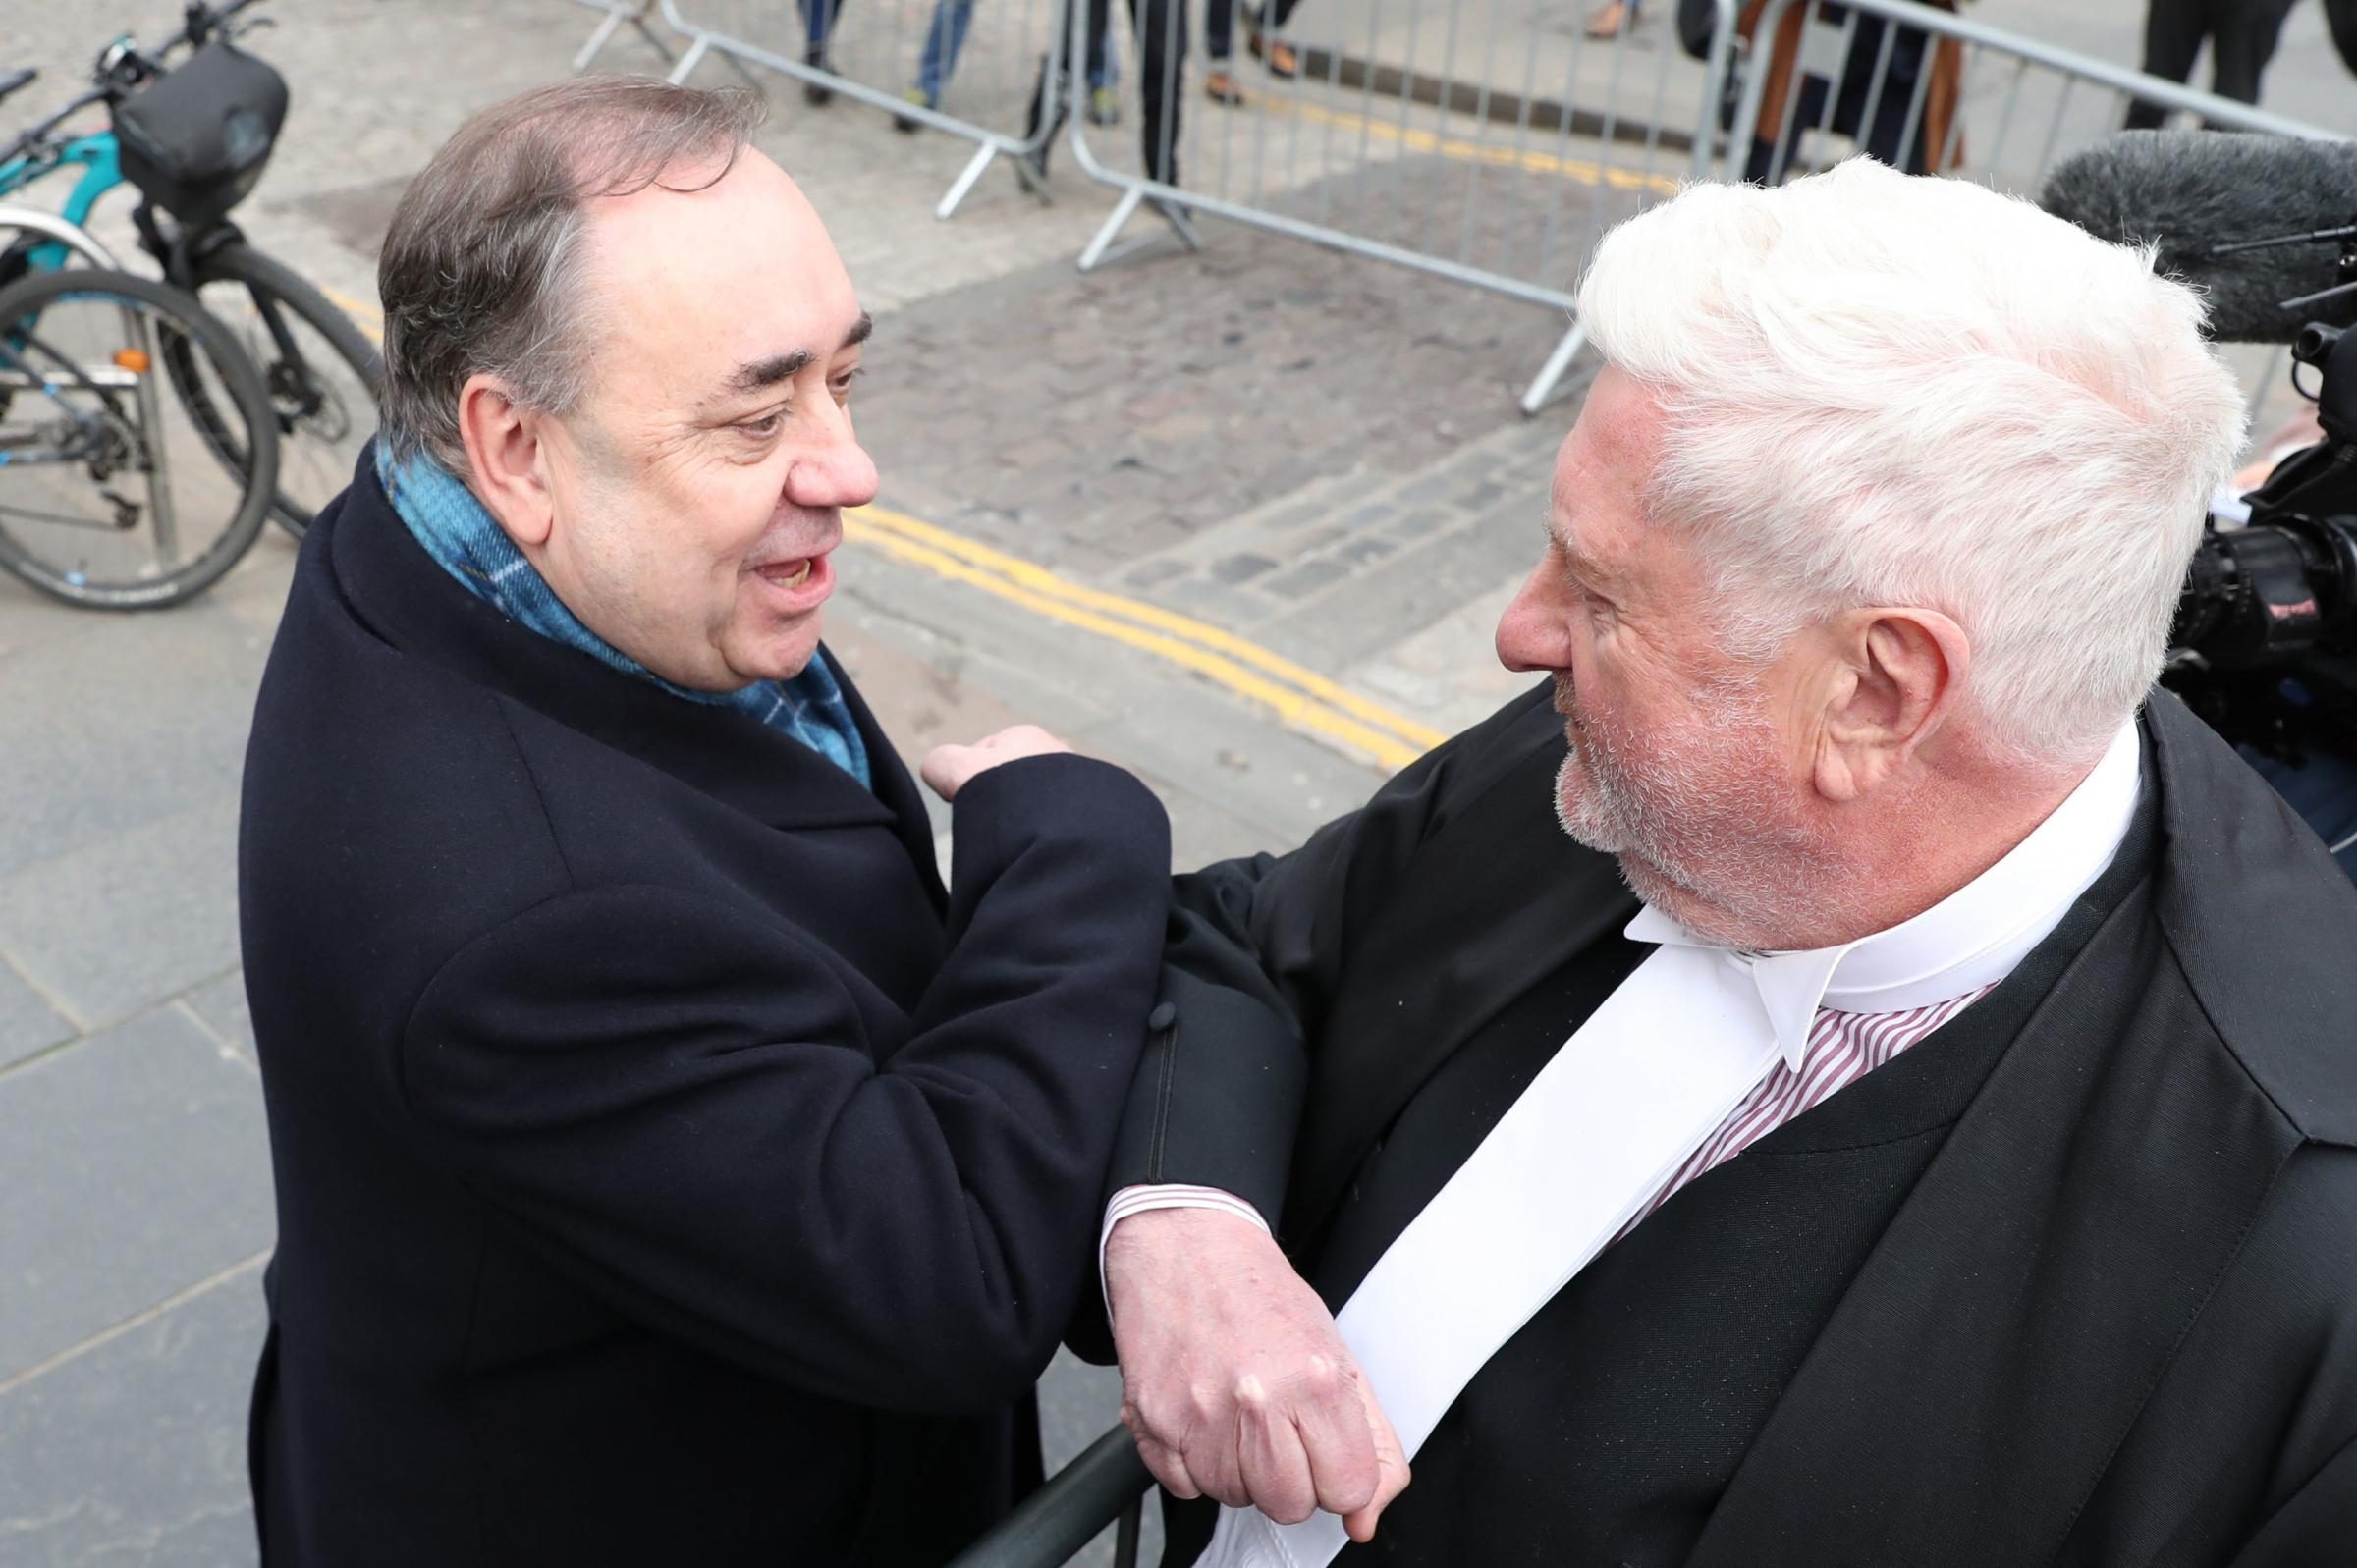 Alex Salmond's QC under fire over video footage showing him naming sexual assault complainers